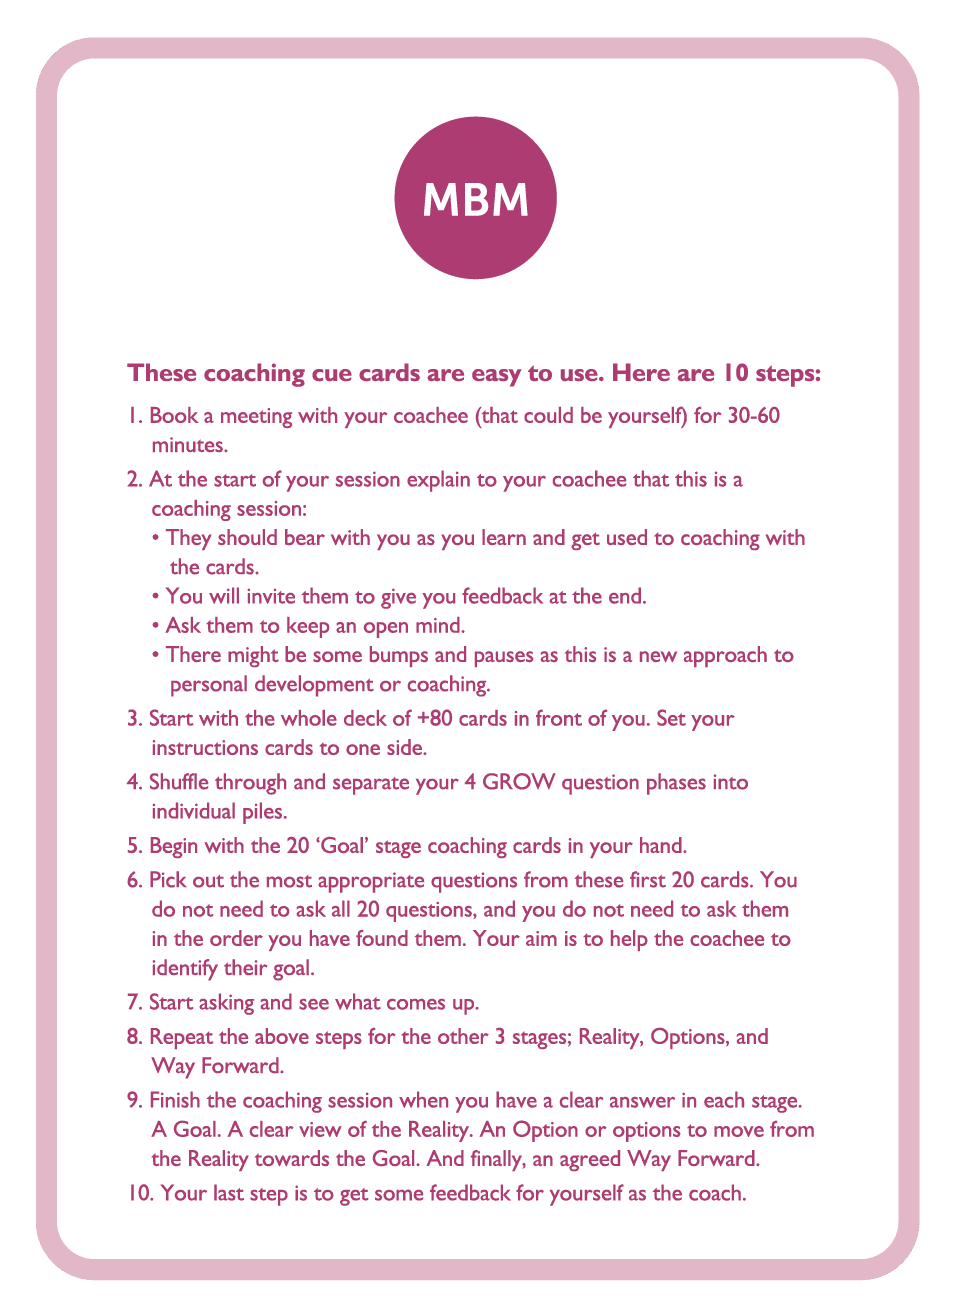 Coaching card with MBM logo titled 10 steps